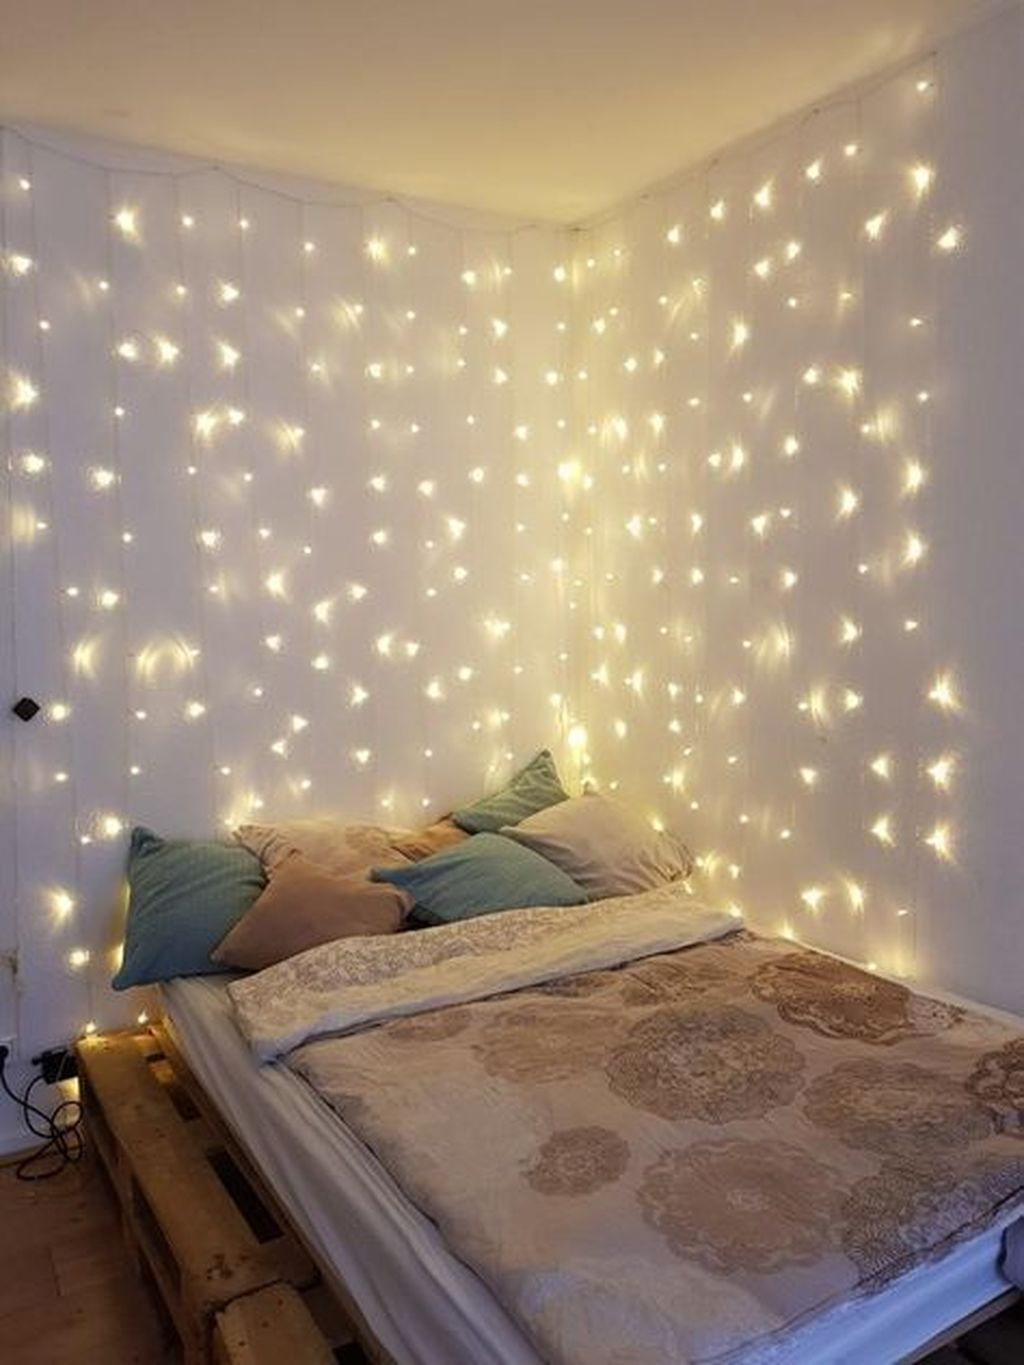 Stunning Christmas Lights Decoration Ideas In The Bedroom 27